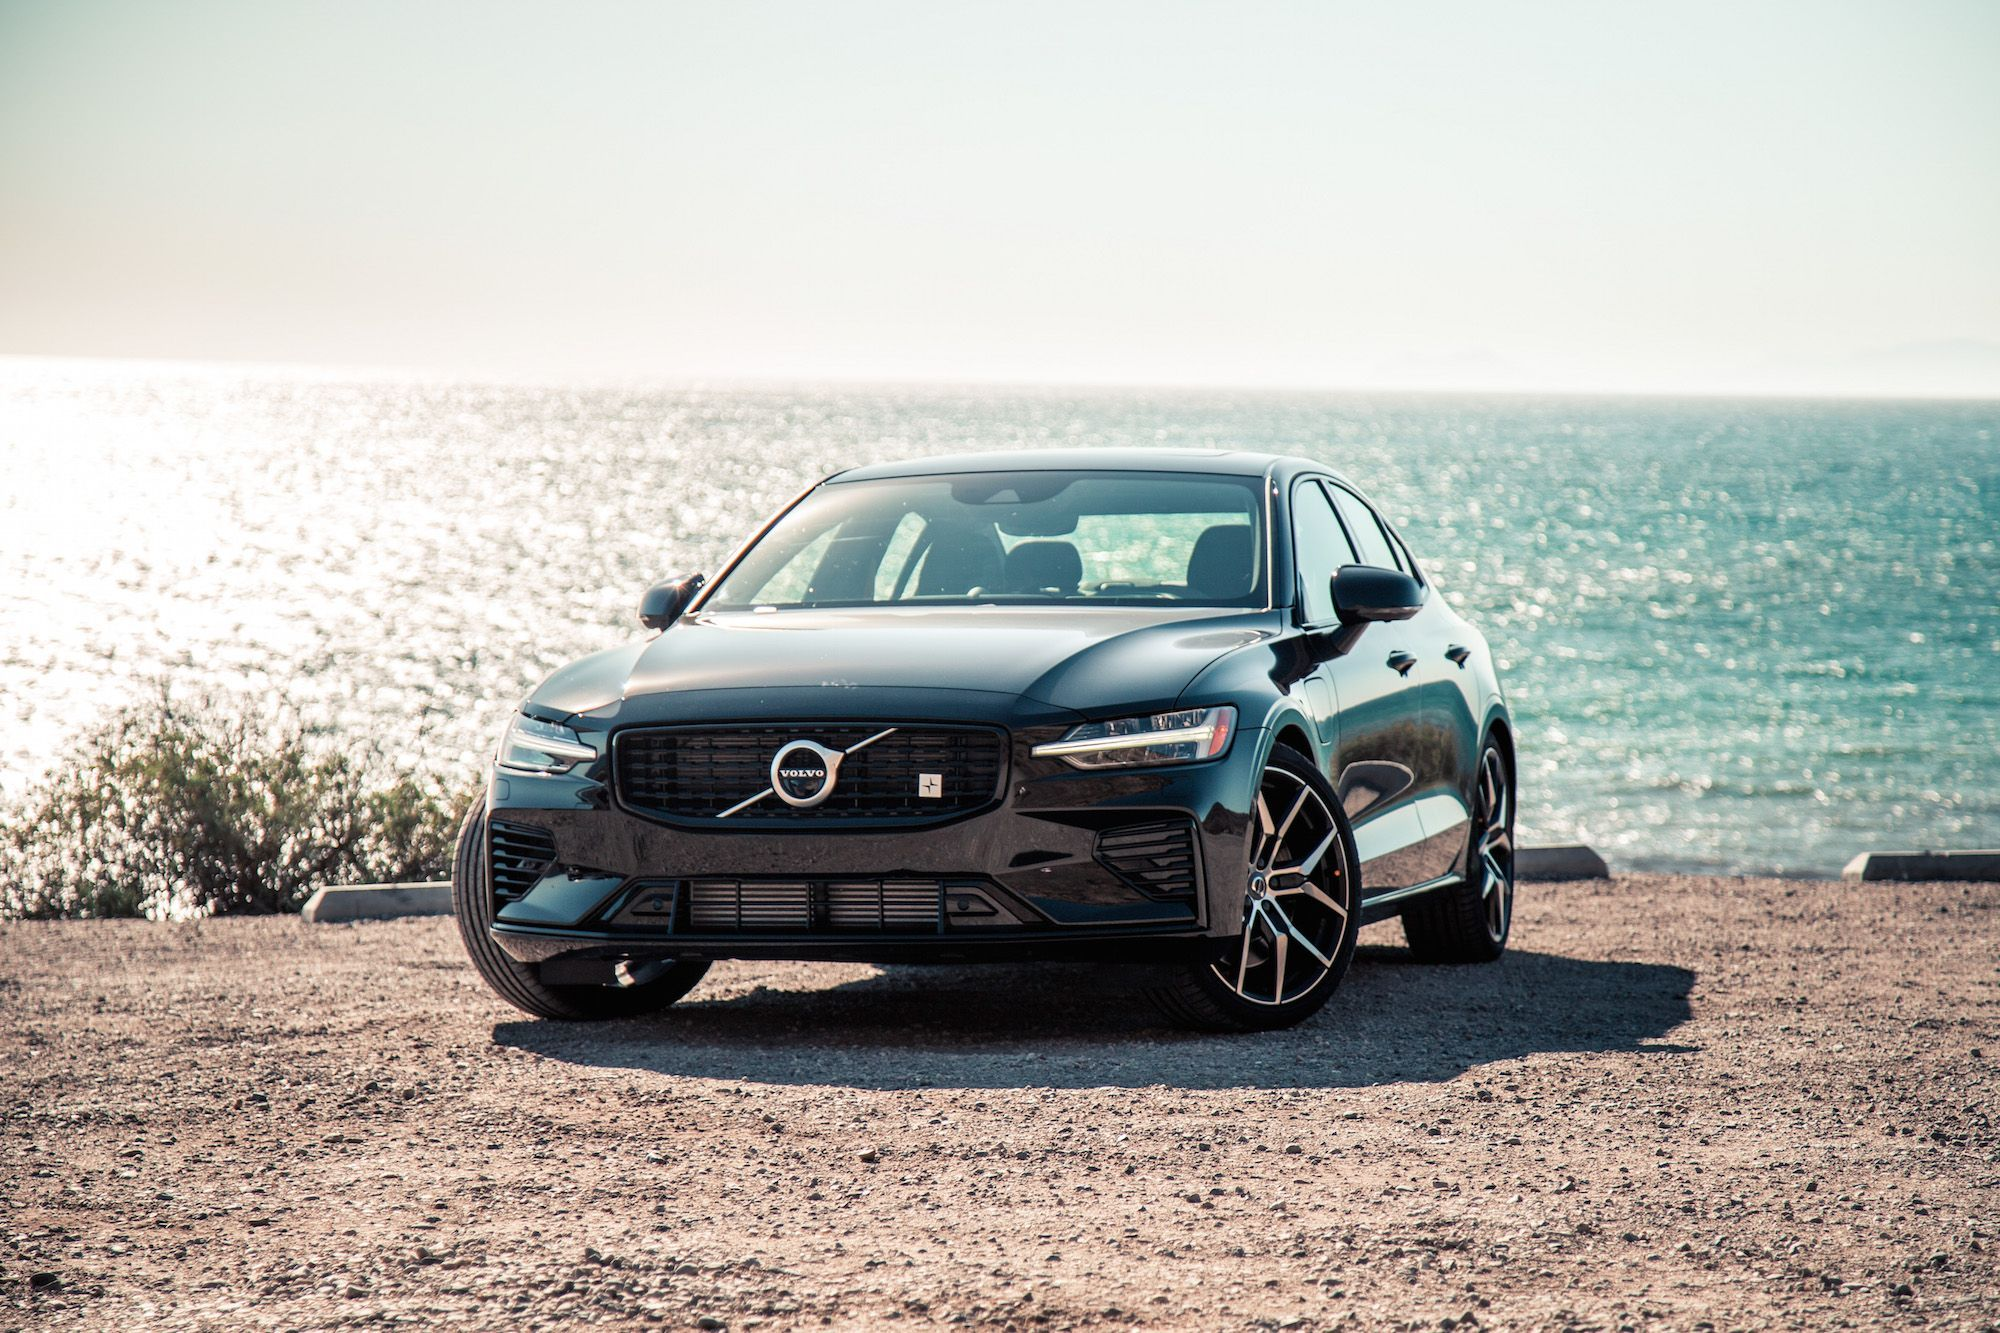 Expert Review Of The 2020 Volvo Polestar V60 Provides The Latest Look At Trim Level Features And Specs Performance Safety And Comf Volvo S60 Volvo Pole Star